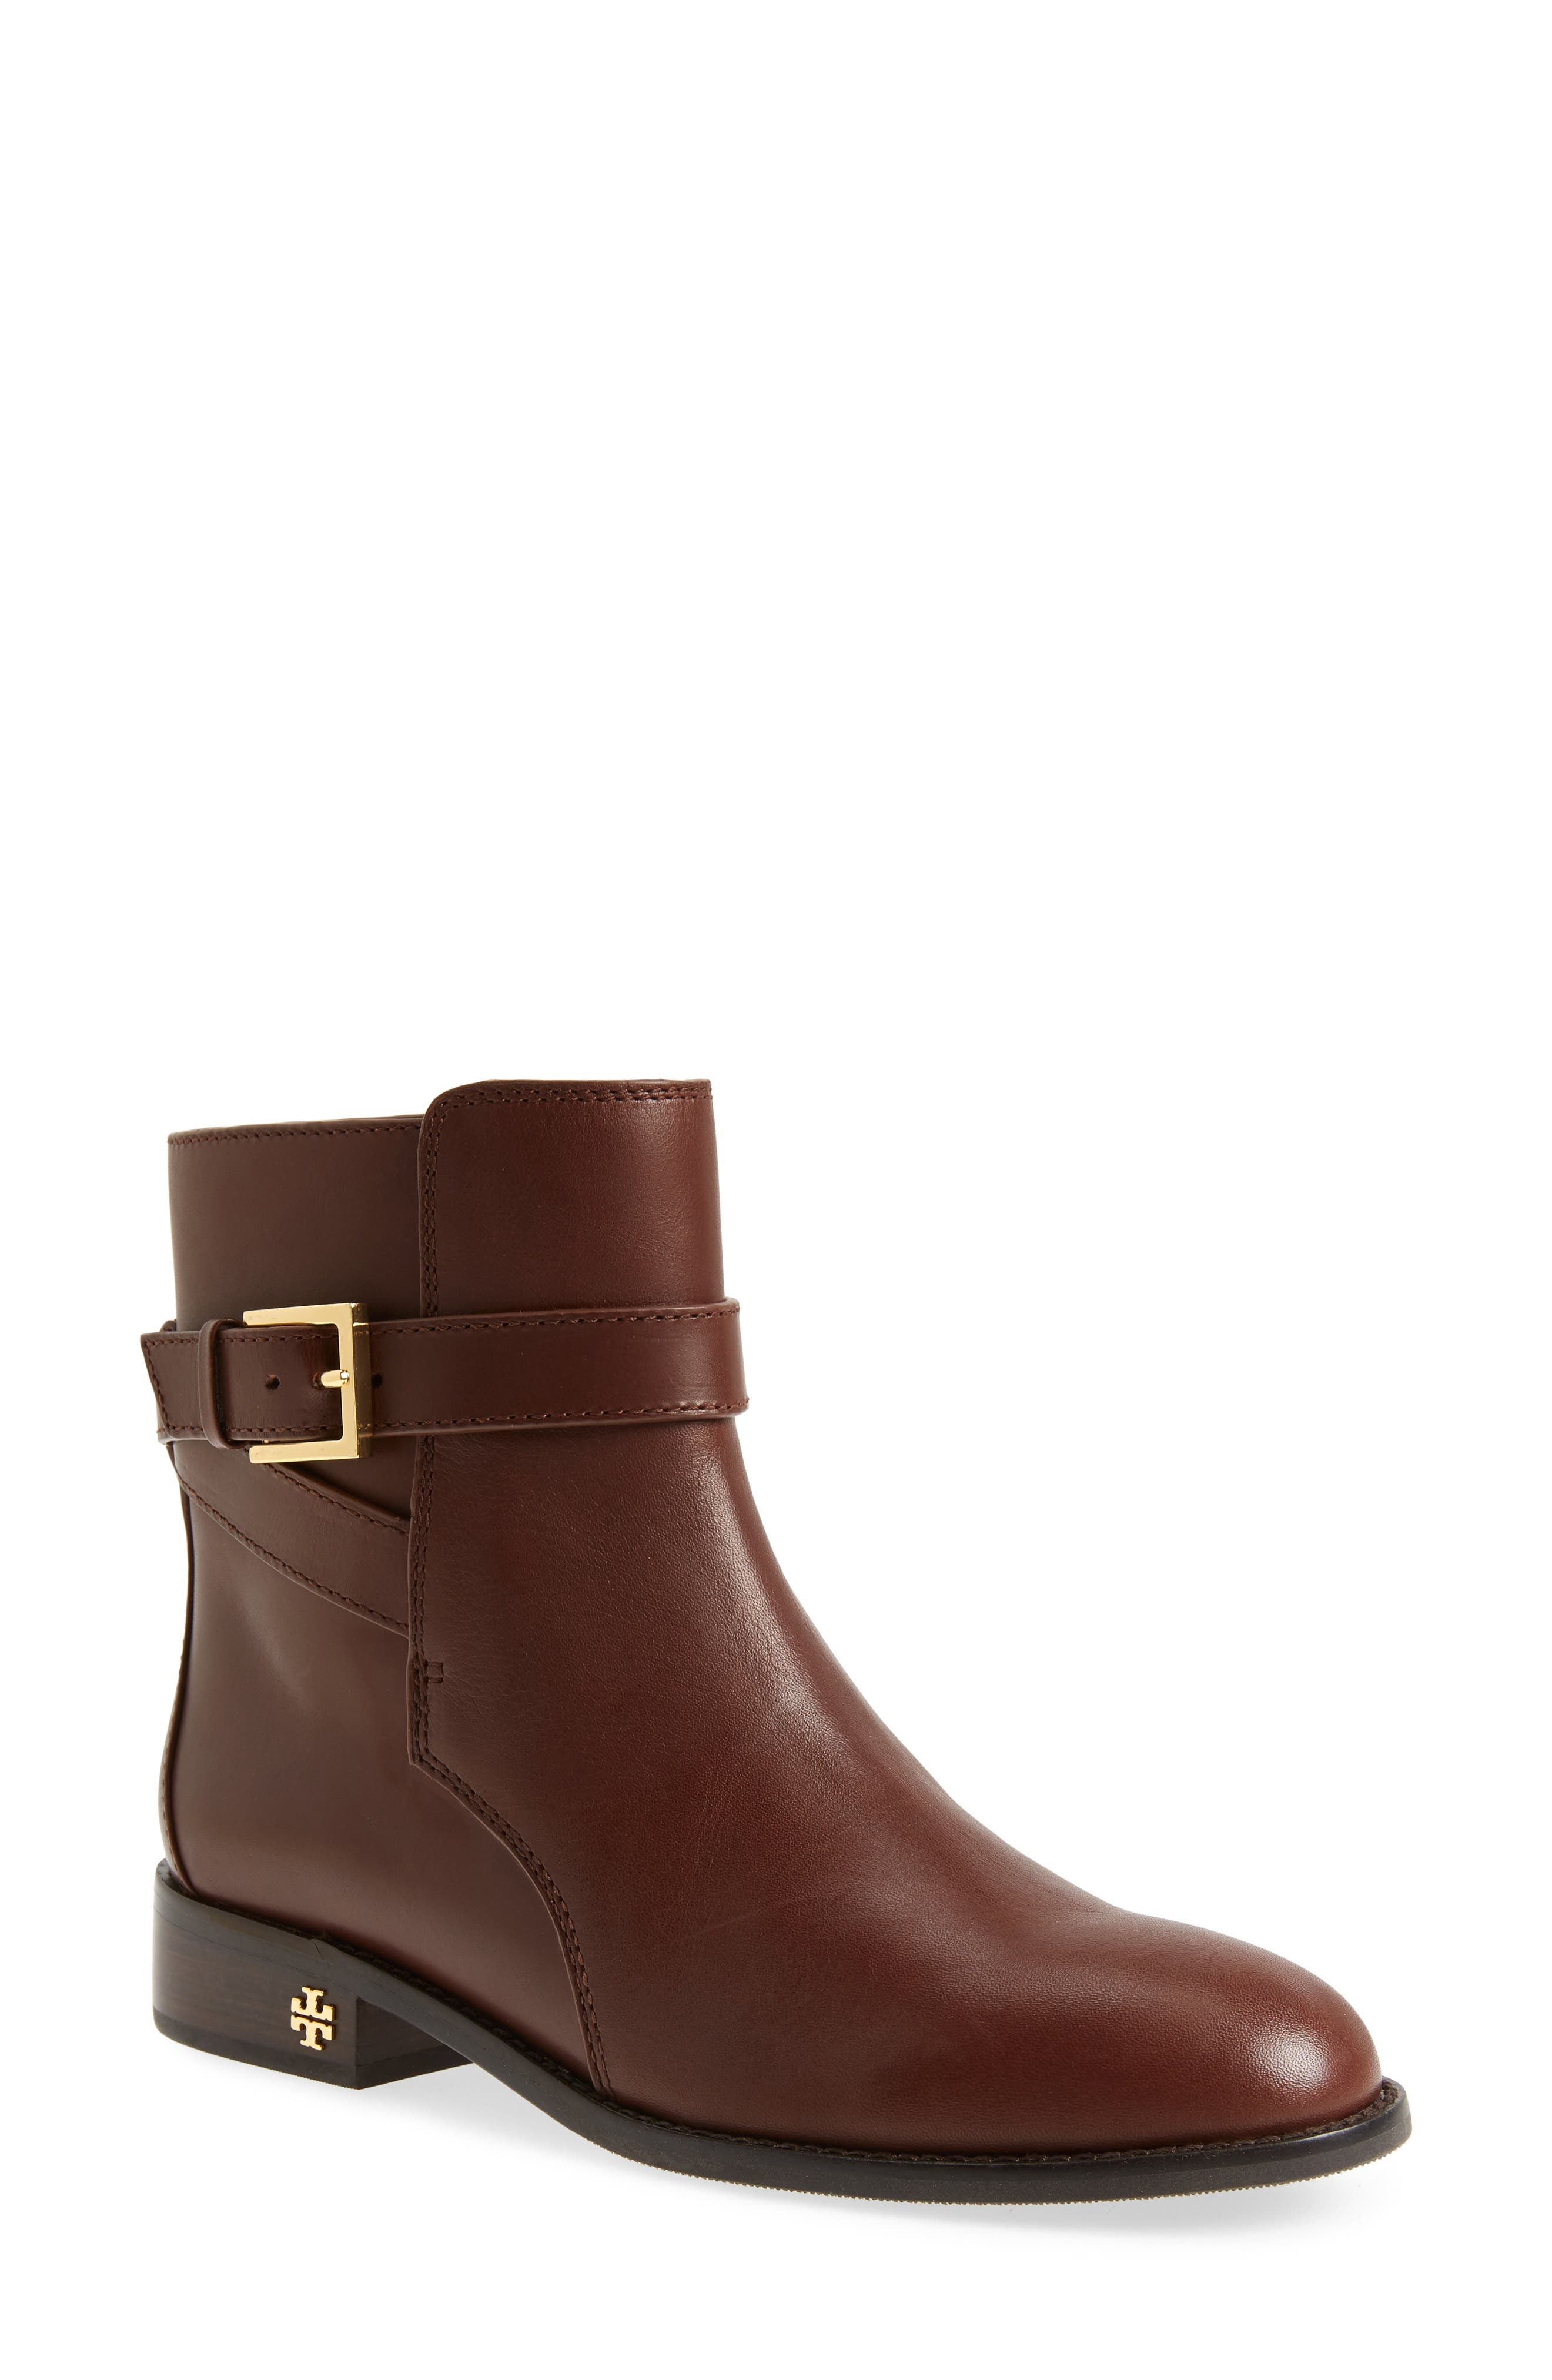 TORY BURCH, Brooke Bootie, Main thumbnail 1, color, 200